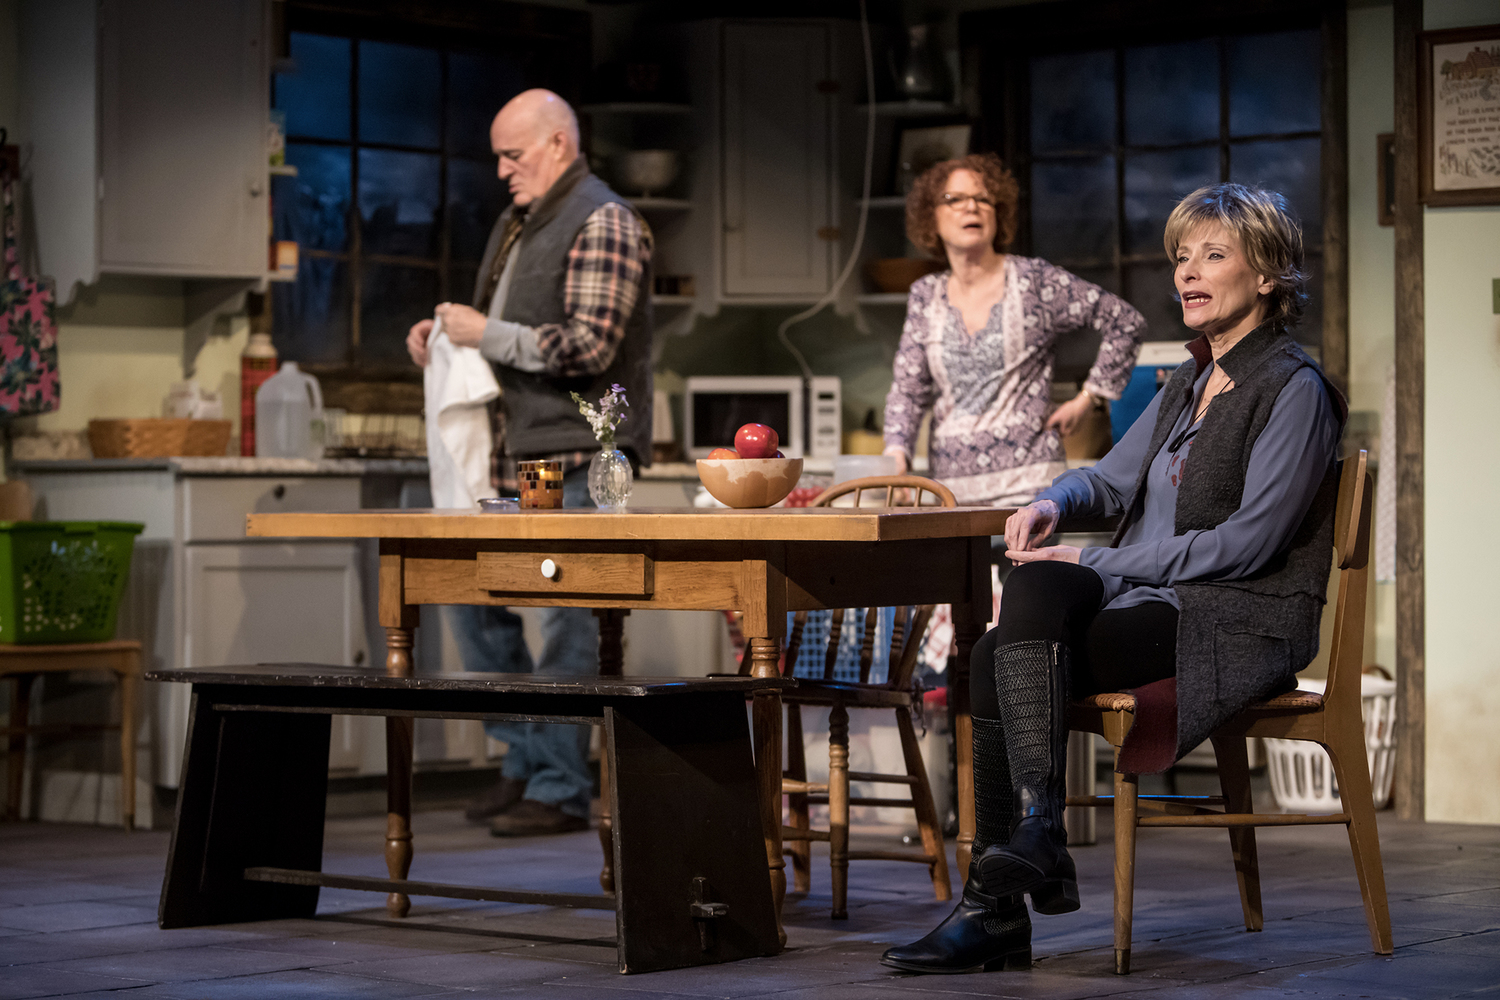 BWW Review: Sobering and Resonant Regional Premiere of THE CHILDREN at Jungle Theater